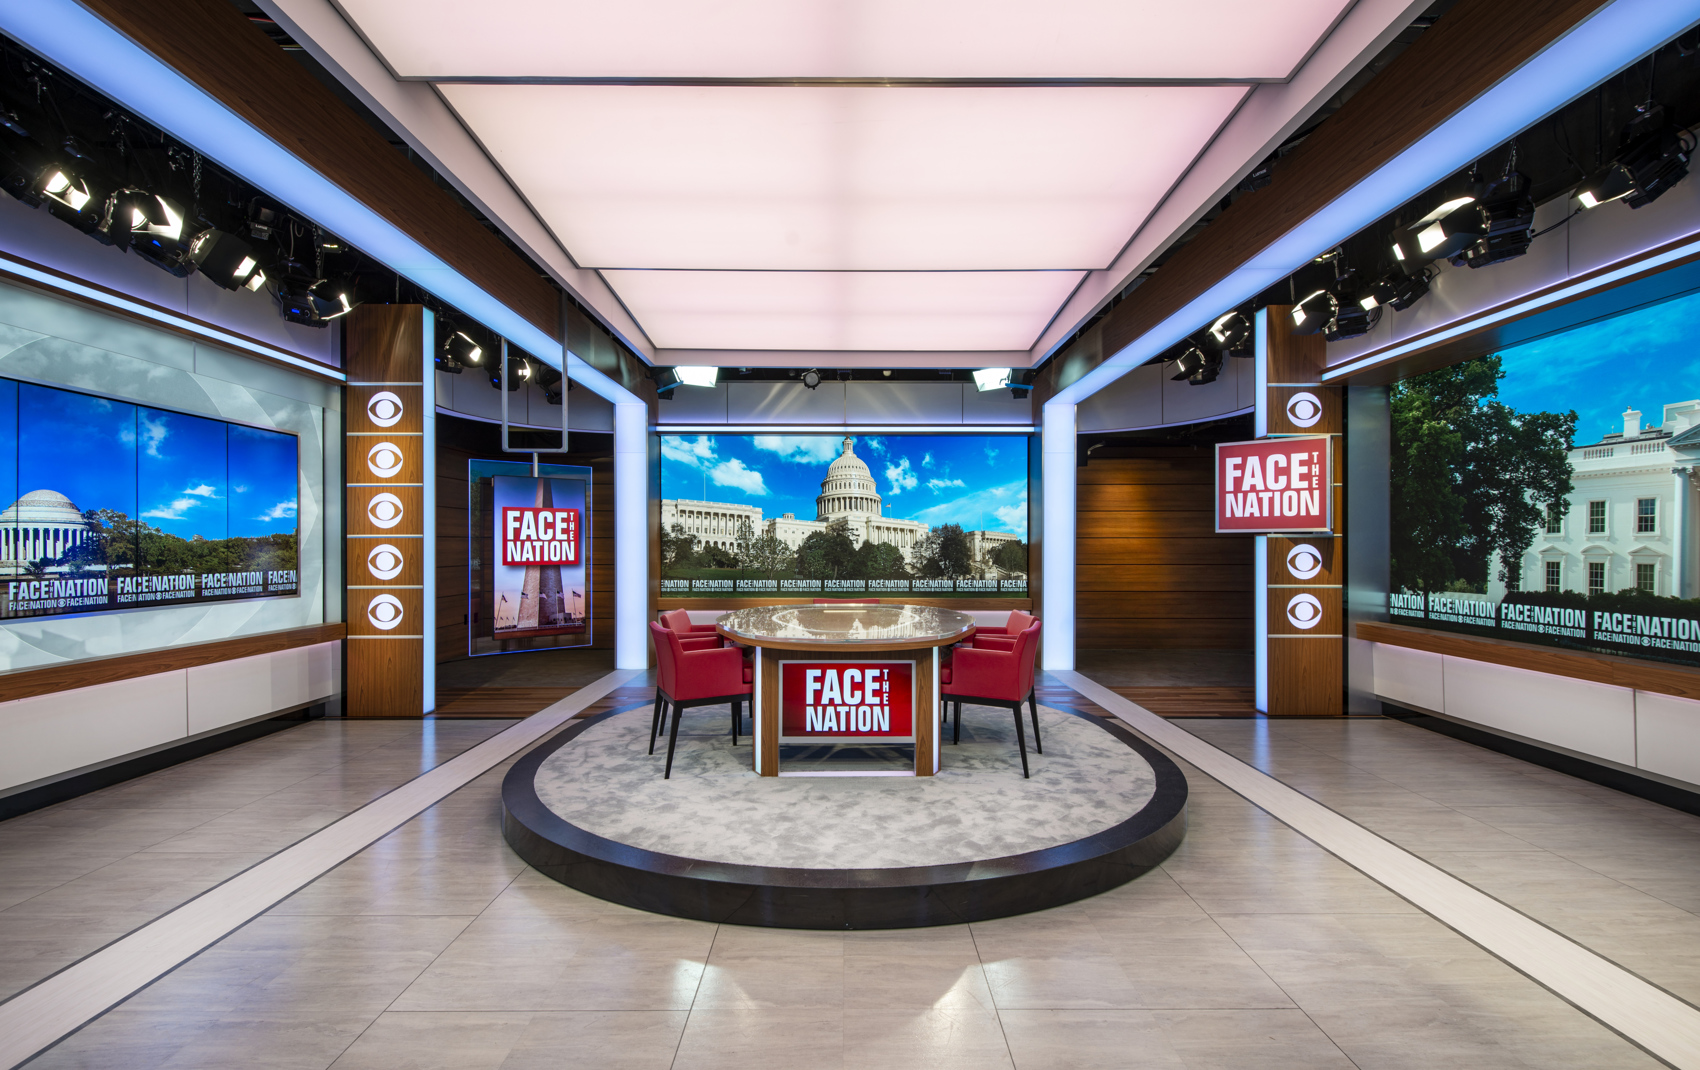 ncs_cbs-news_face-the-nation_tv-studio_0001